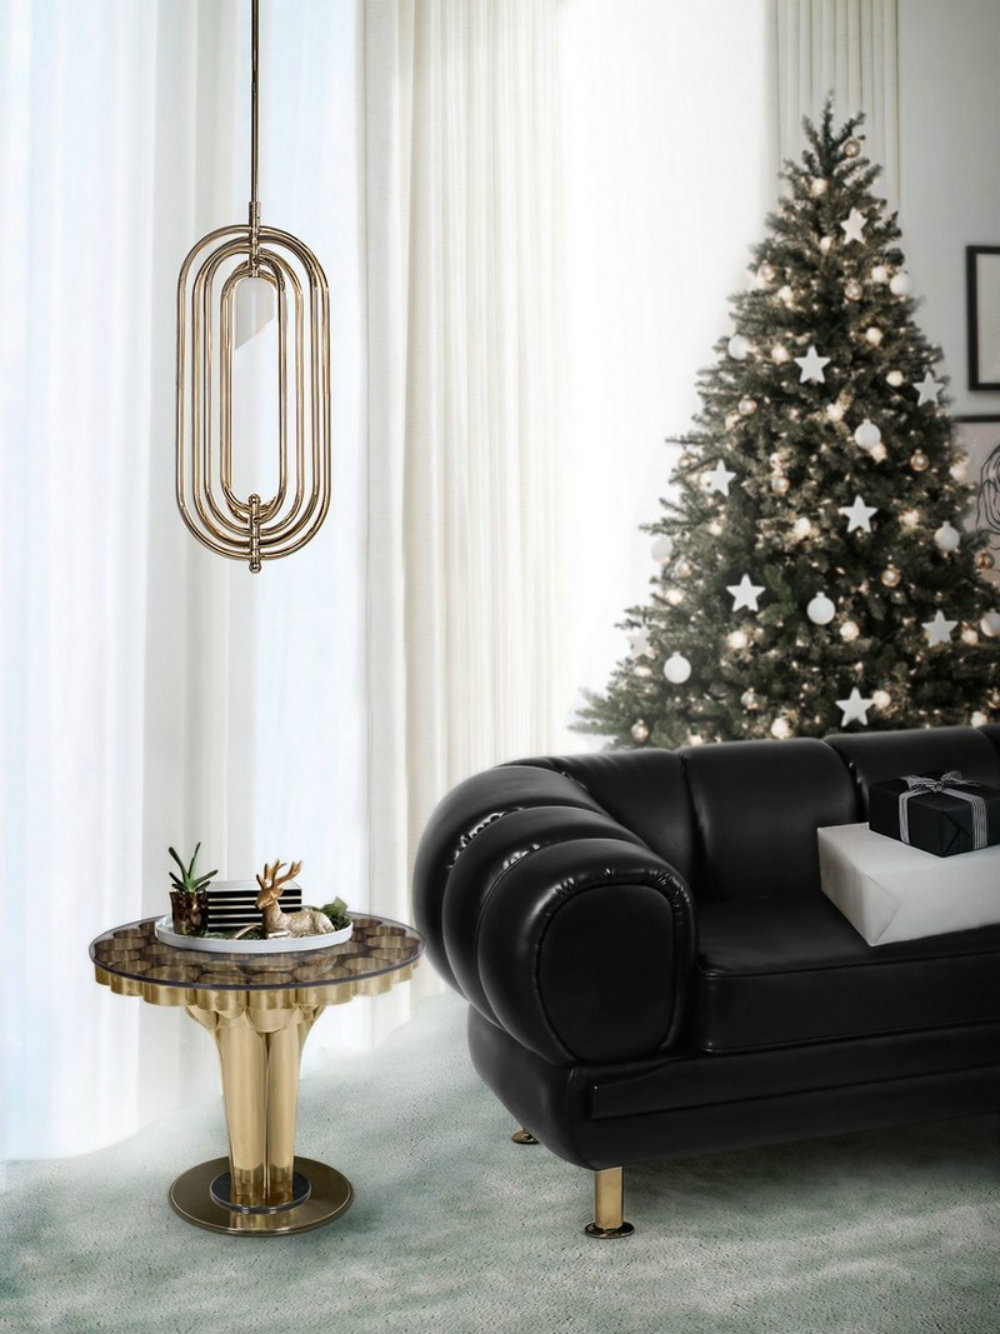 furniture pieces Celebrate Christmas With These Incredible Furniture Pieces For Your Living Room Celebrate Christmas With These Incredible Furniture Pieces For Your Living Room 3